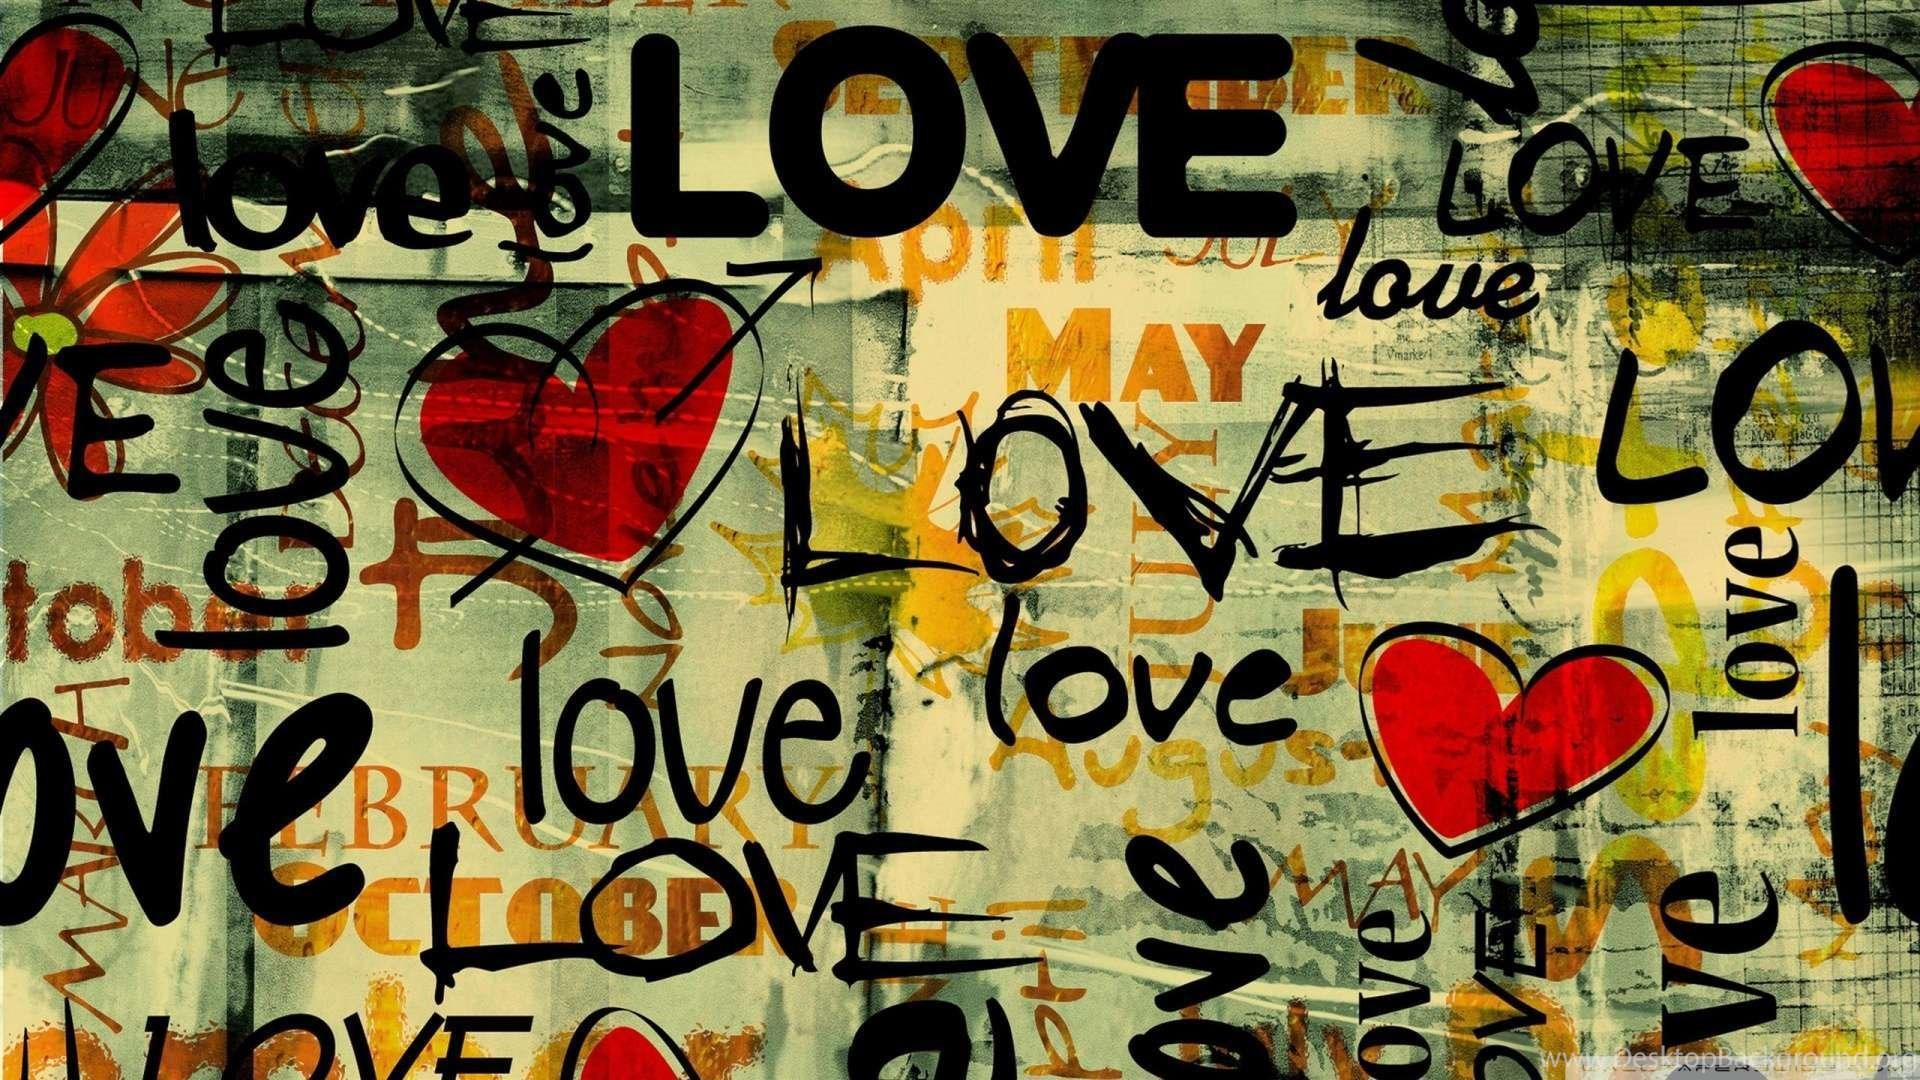 50 Love Wallpaper Hd Full Size For Mobile And Laptop: Love 121 Wallpapers 1080p HD Desktop Background